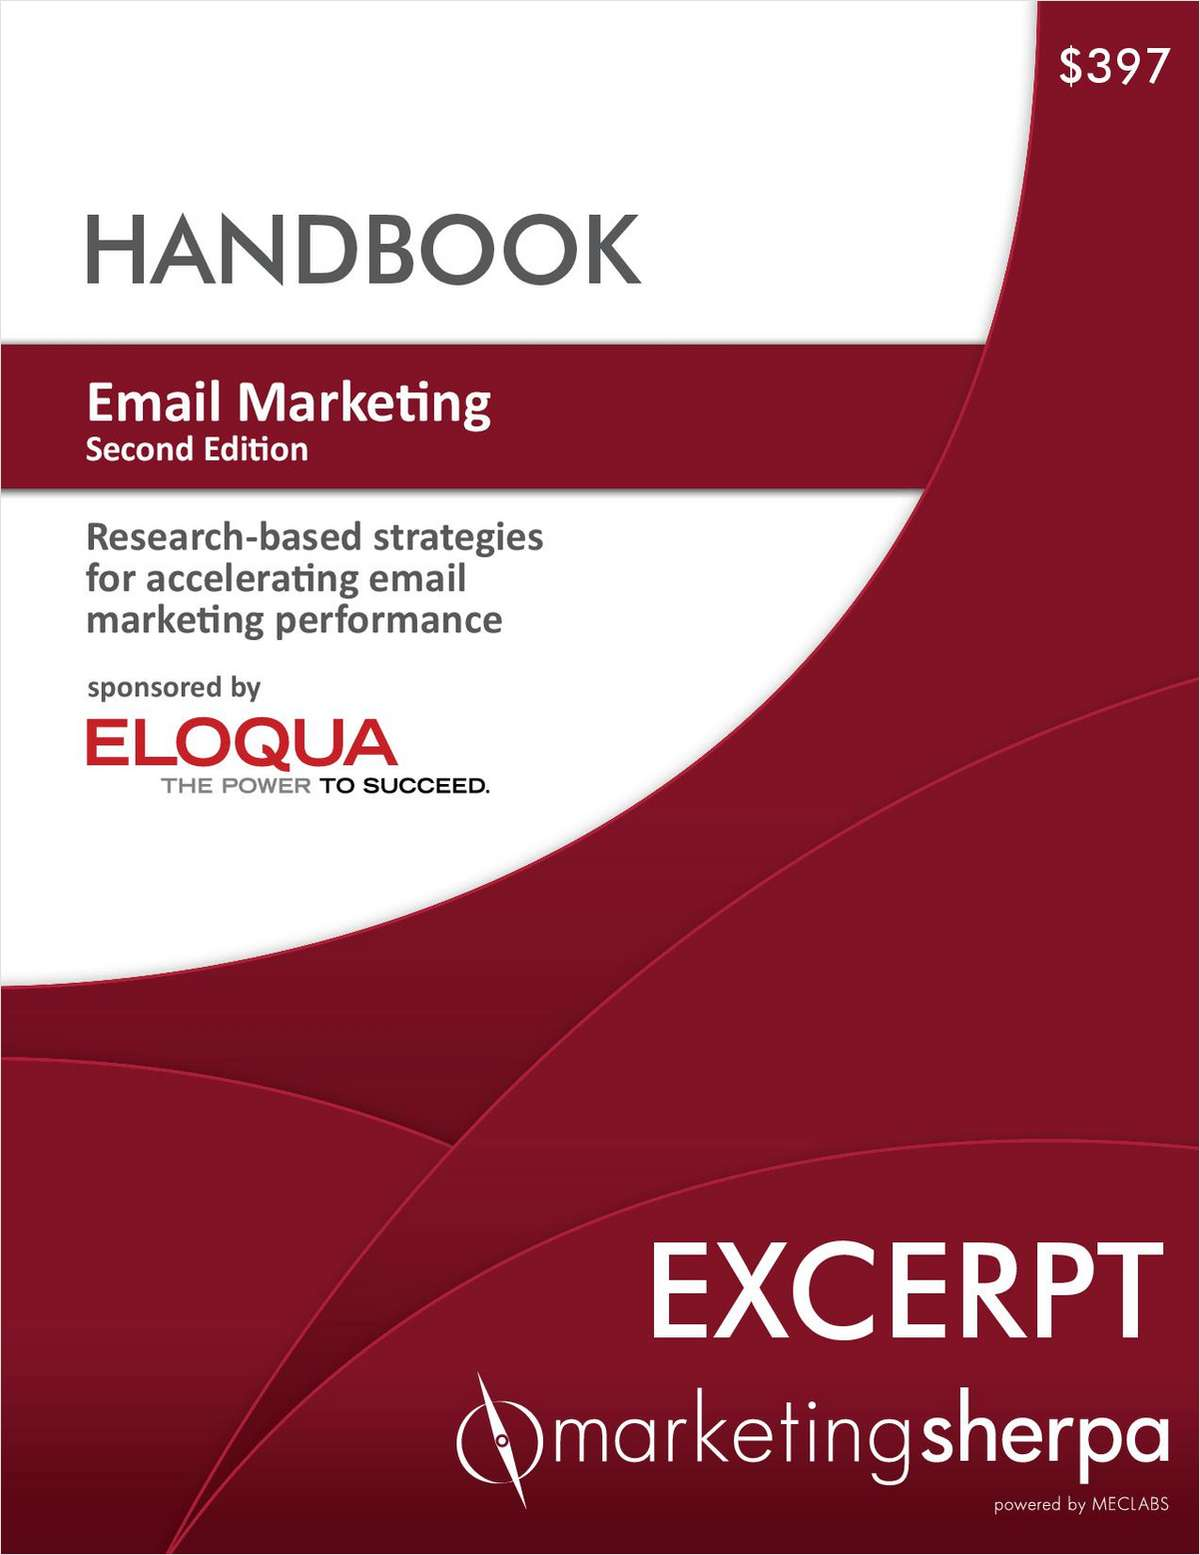 Email Marketing Handbook: Second Edition--Free Excerpt